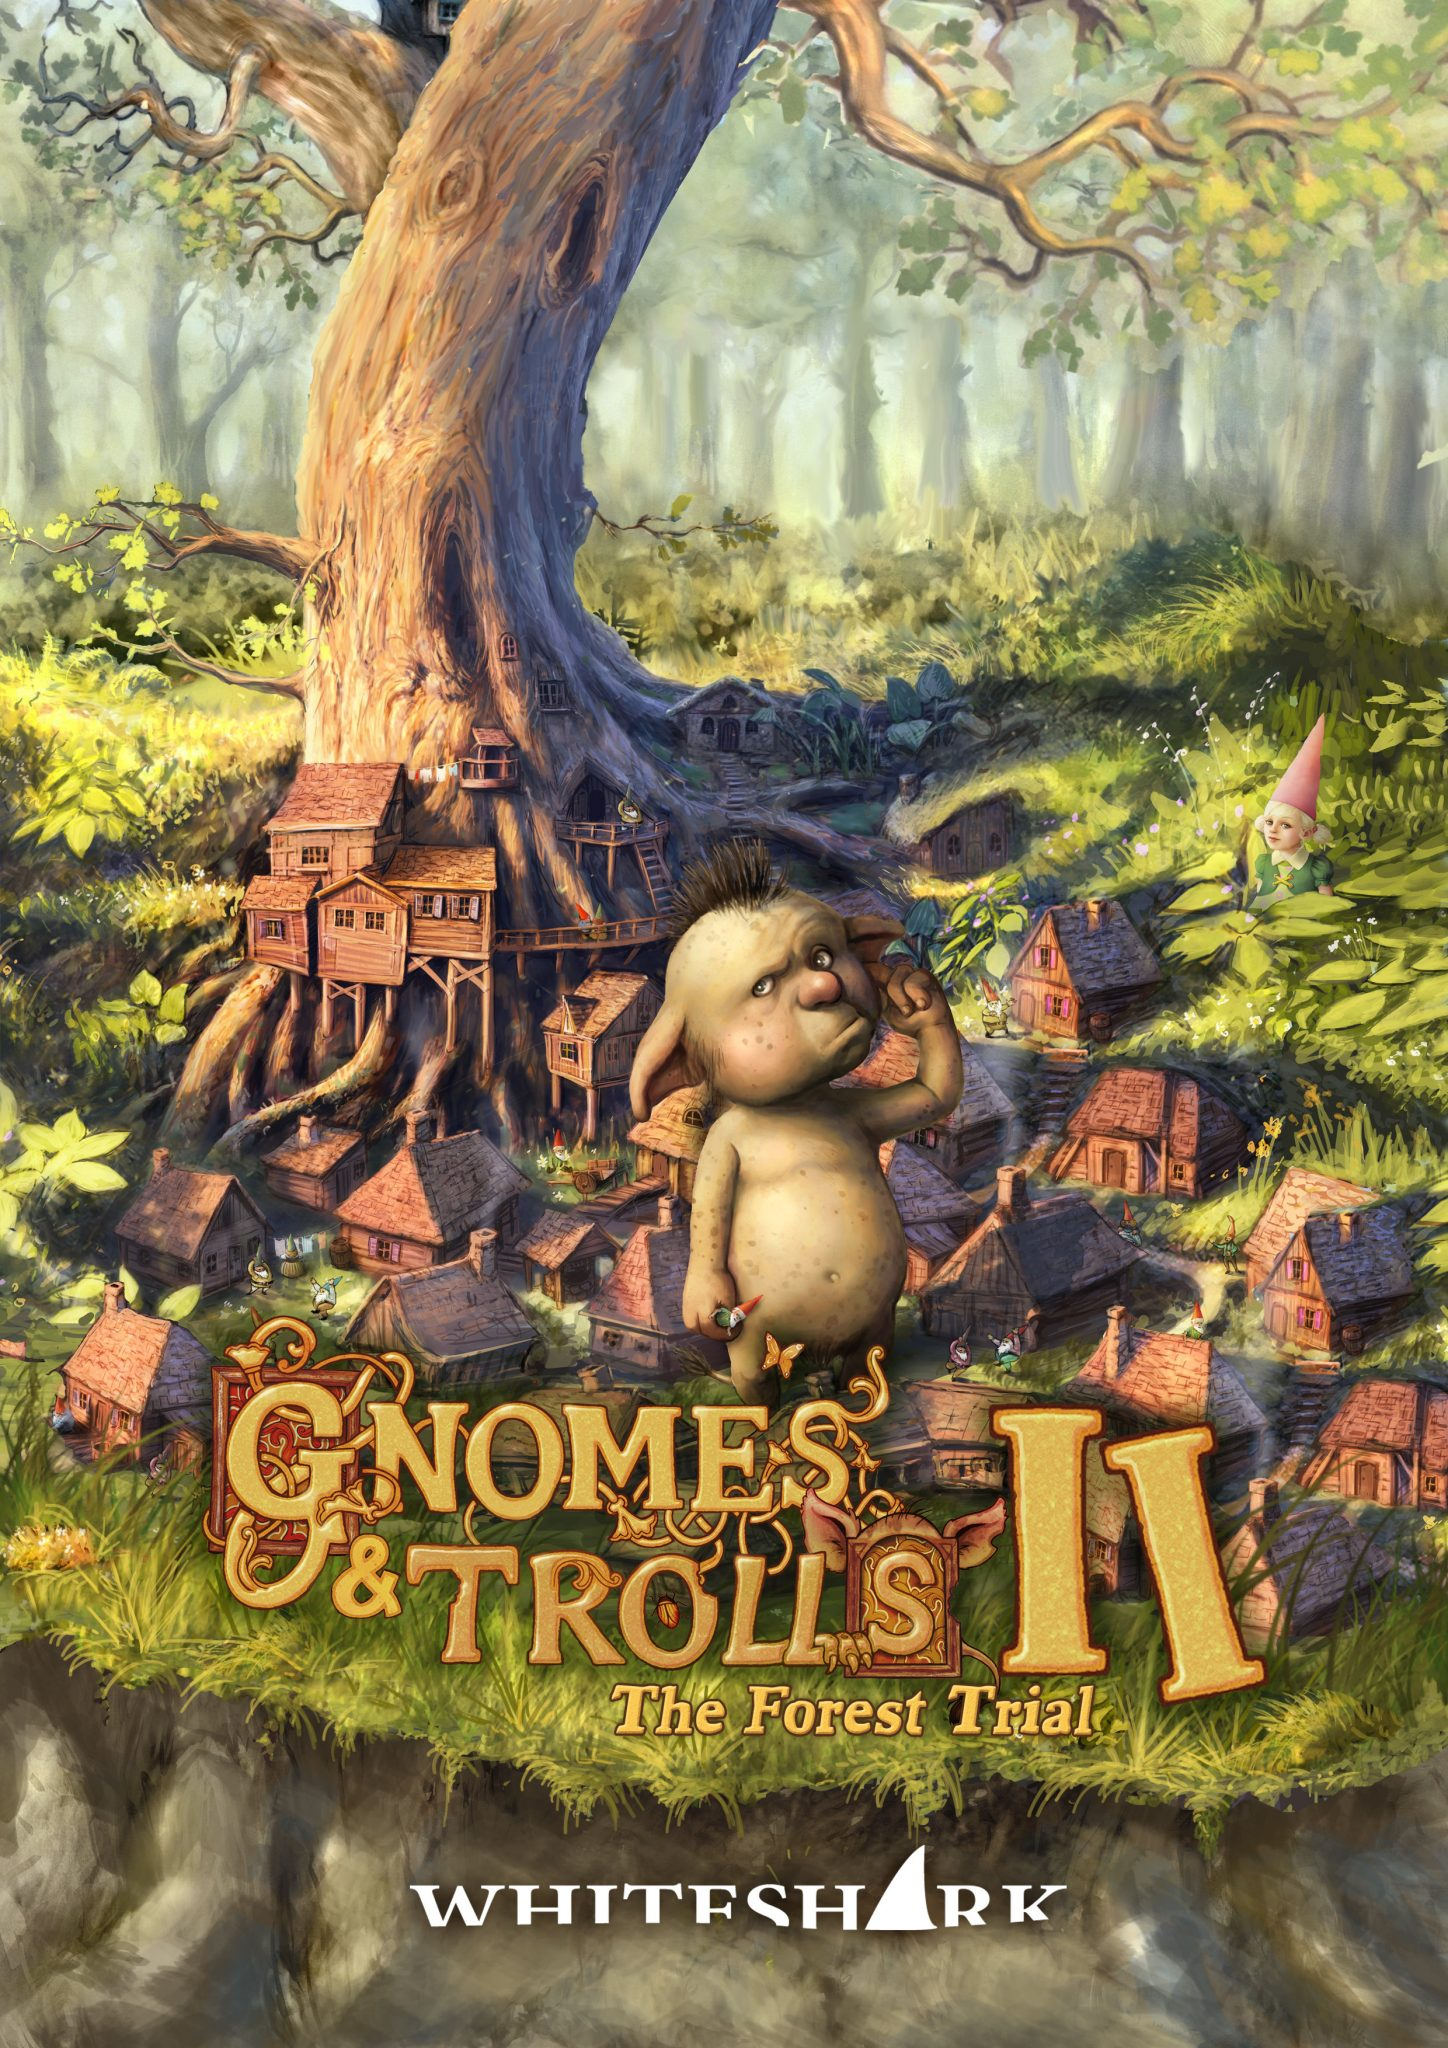 filme noi 2019 Gnomes and Trolls: The Forest Trial